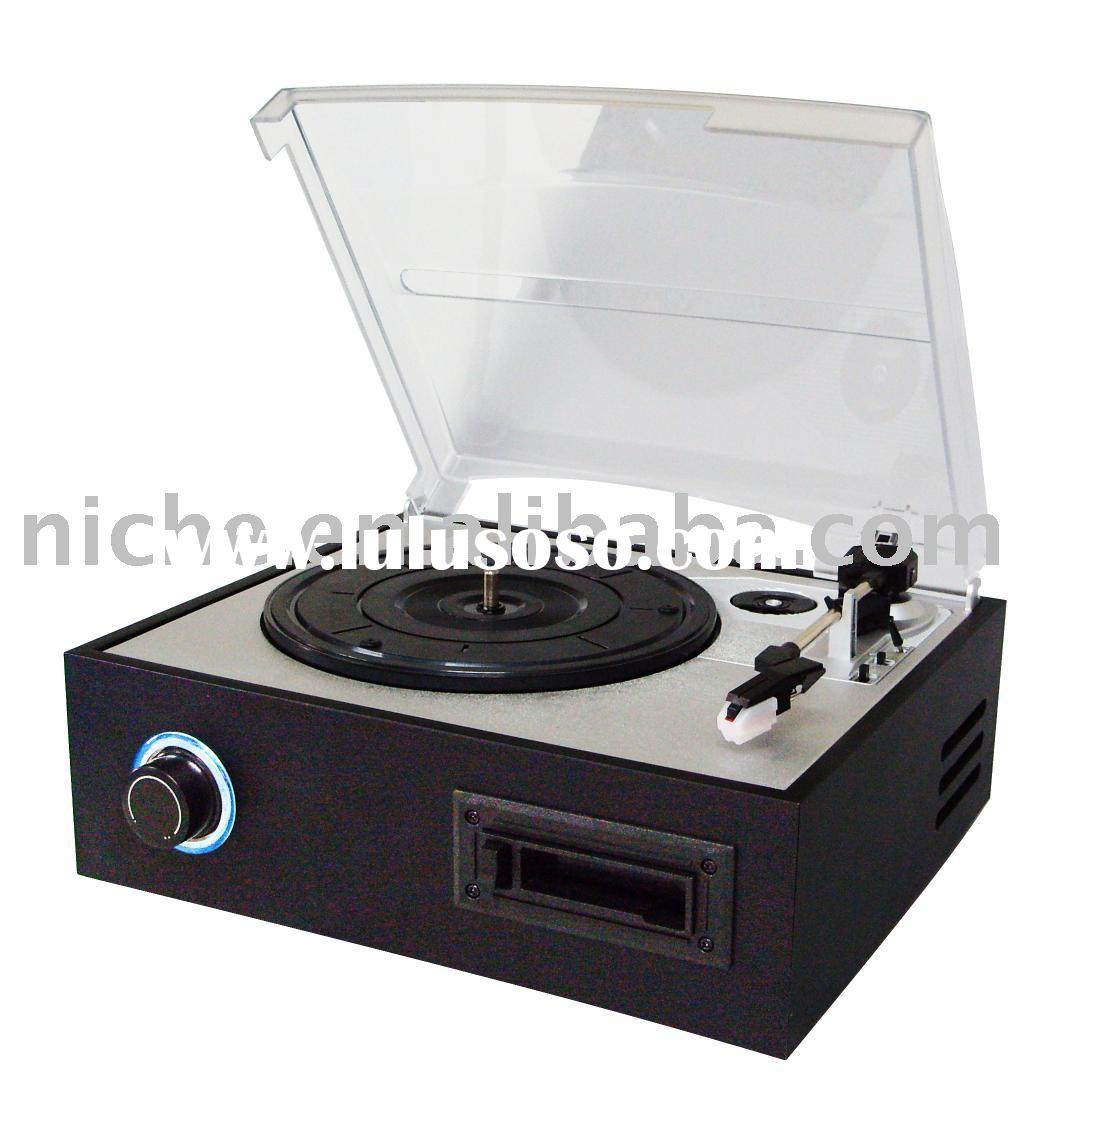 Usb Turntable And Cassette Player / Recorder